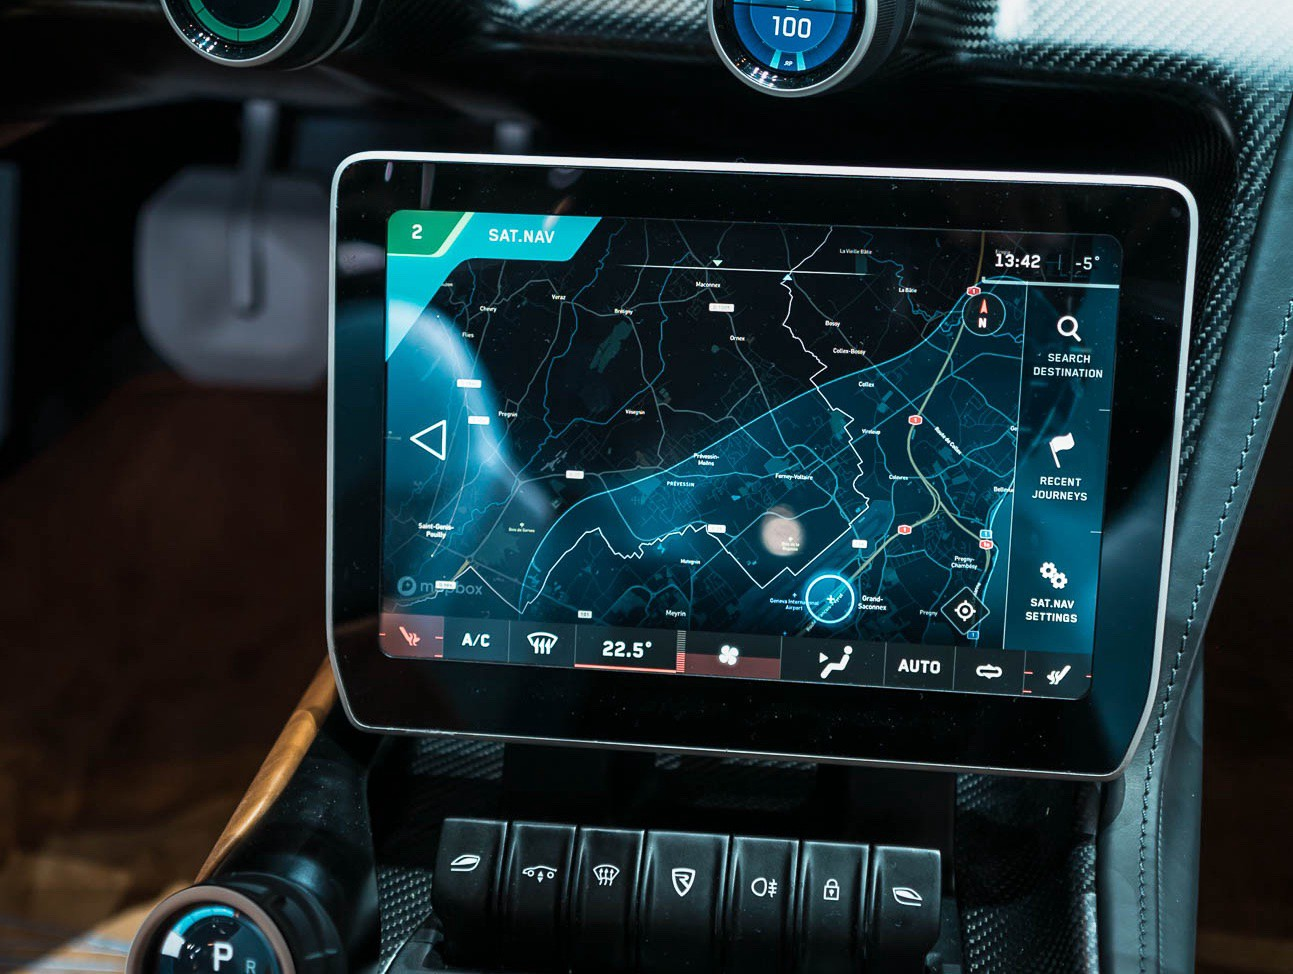 Qt Navigation SDK for automotive and embedded devices